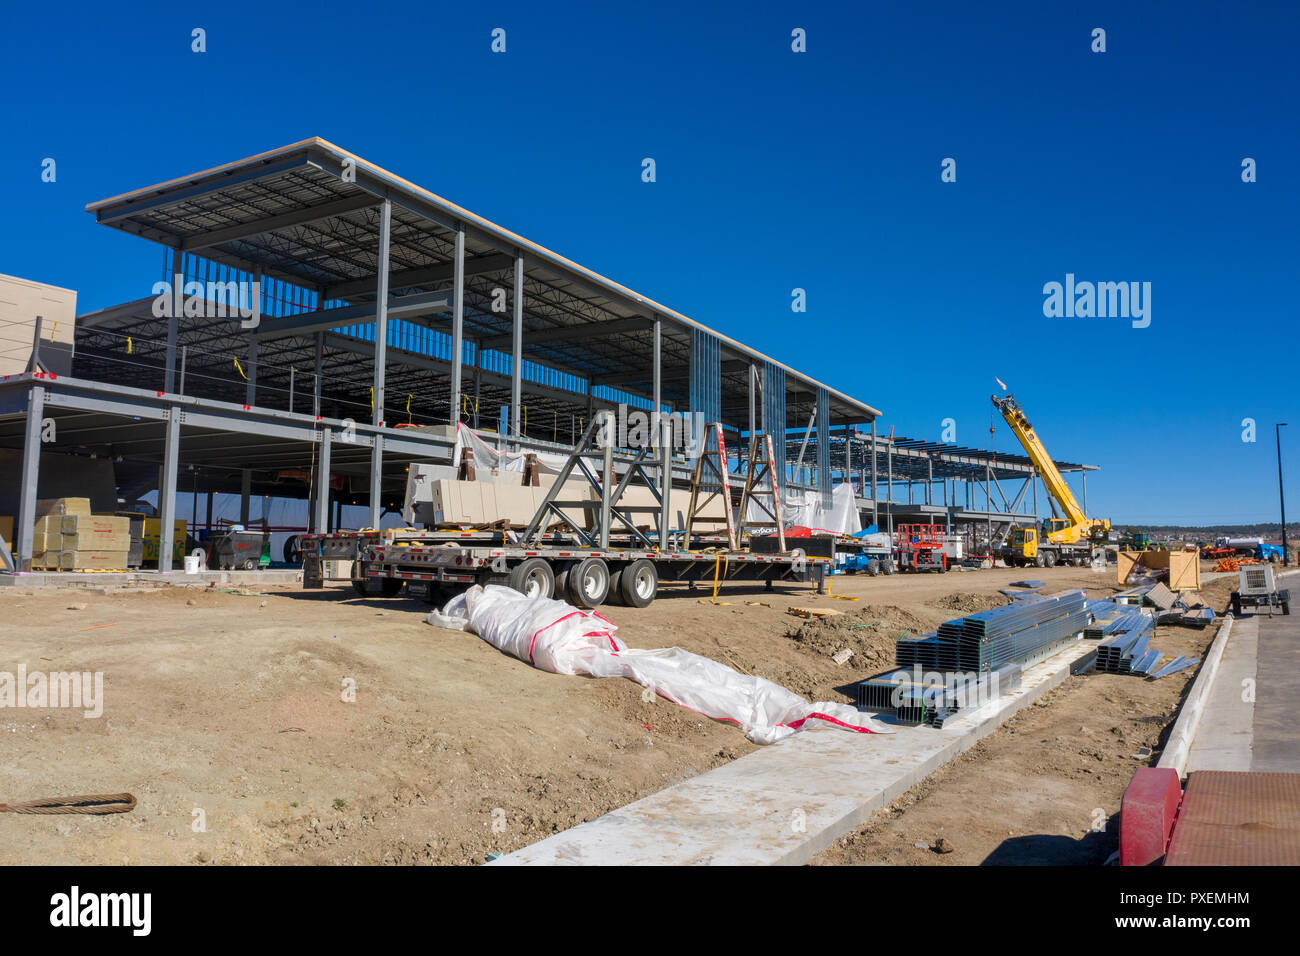 Aerial view of construction site and new structure without walls Stock Photo